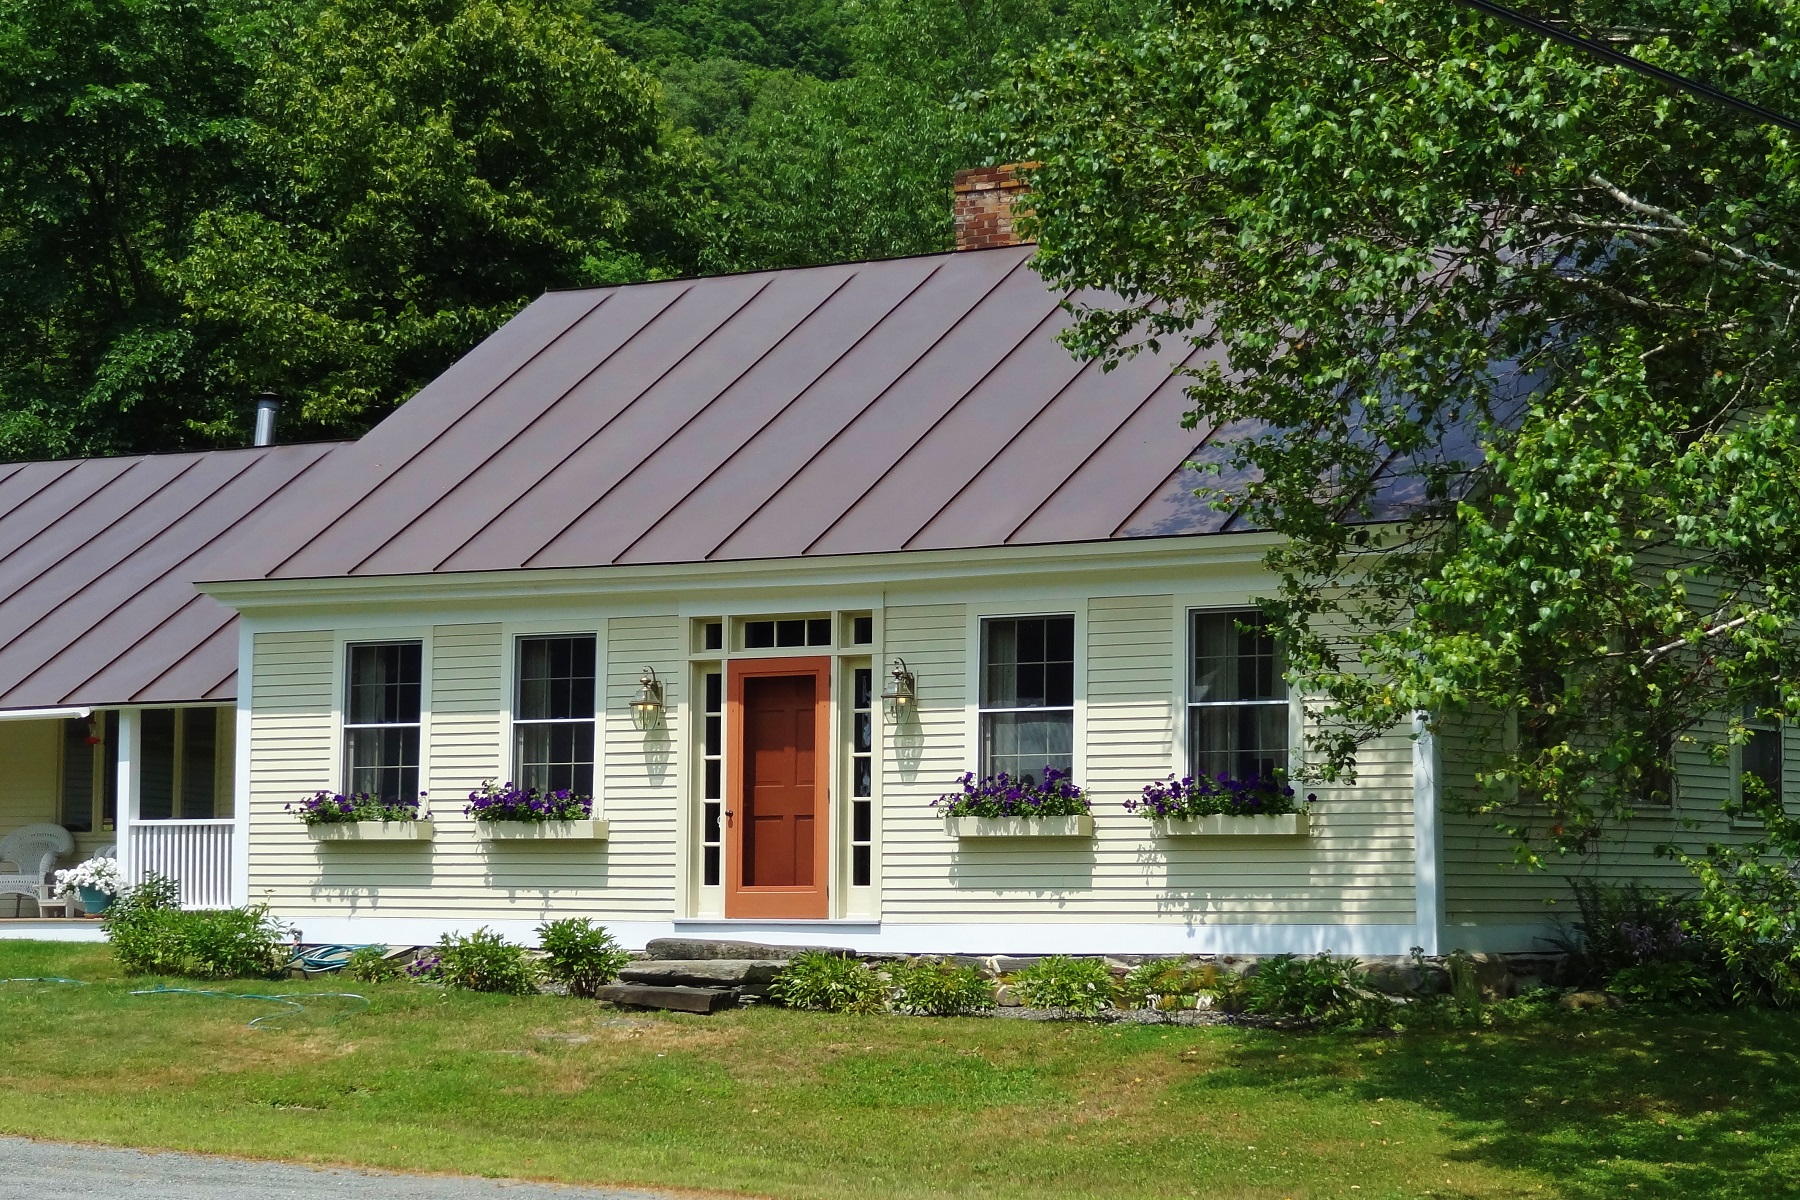 Single Family Homes for Sale at Pre-Civil War Farmstead 6656 South Road Woodstock, Vermont 05071 United States